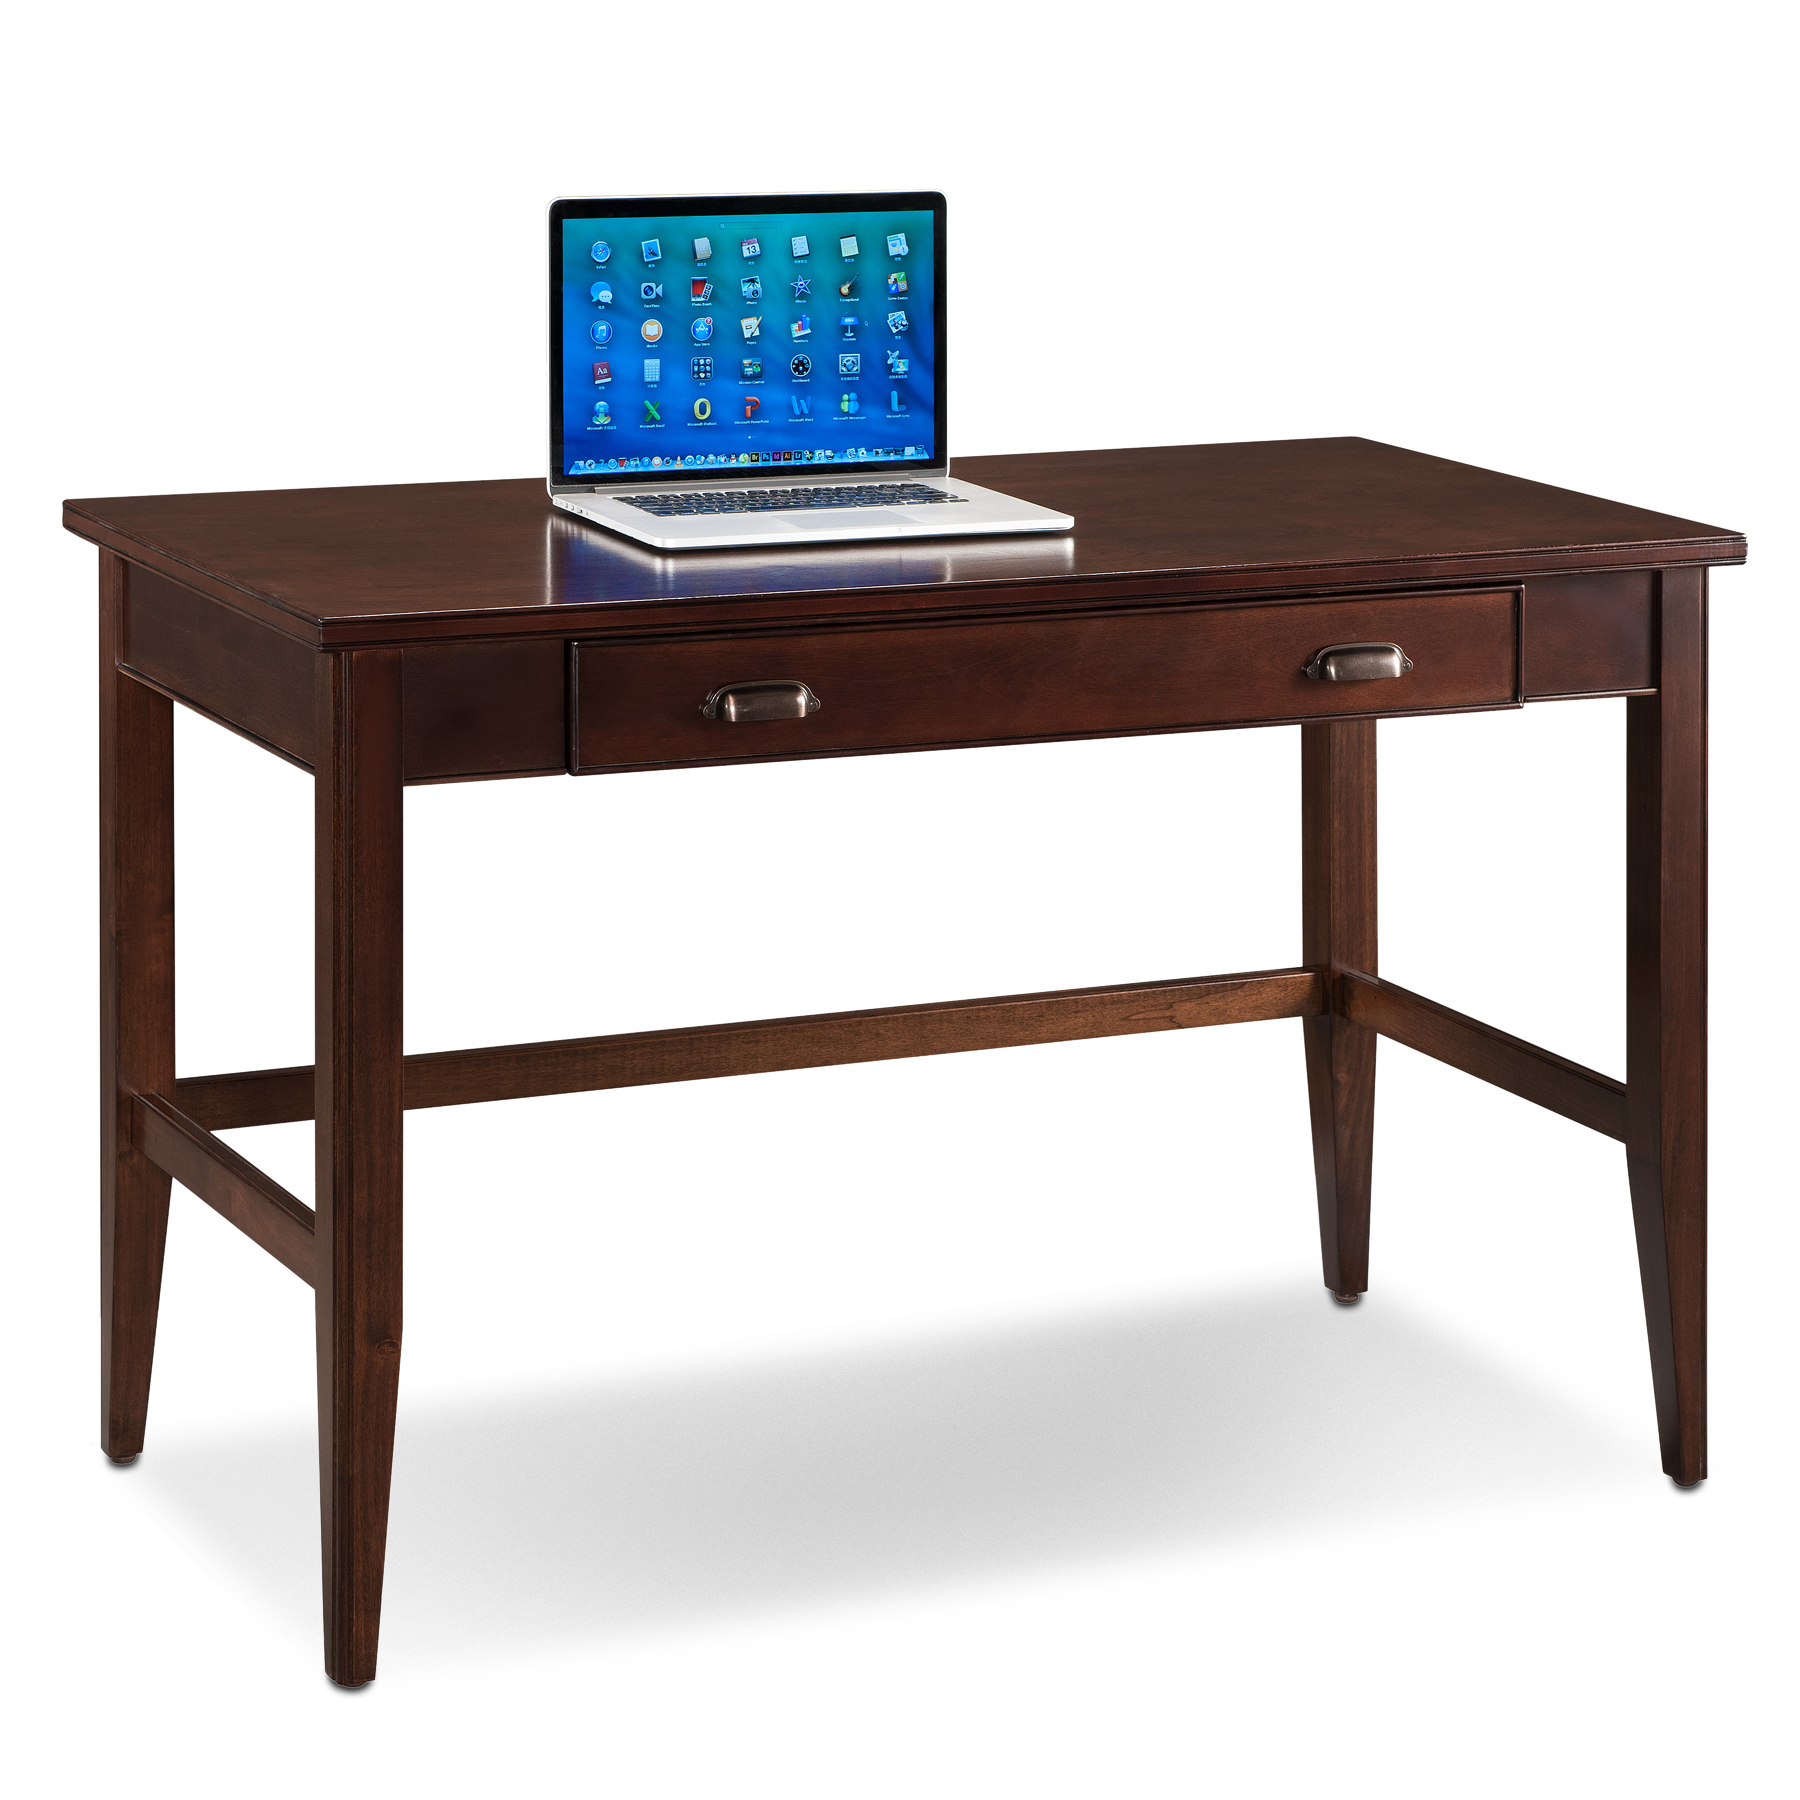 Image of Leick 10511 Laurent Writing Desk, Brown